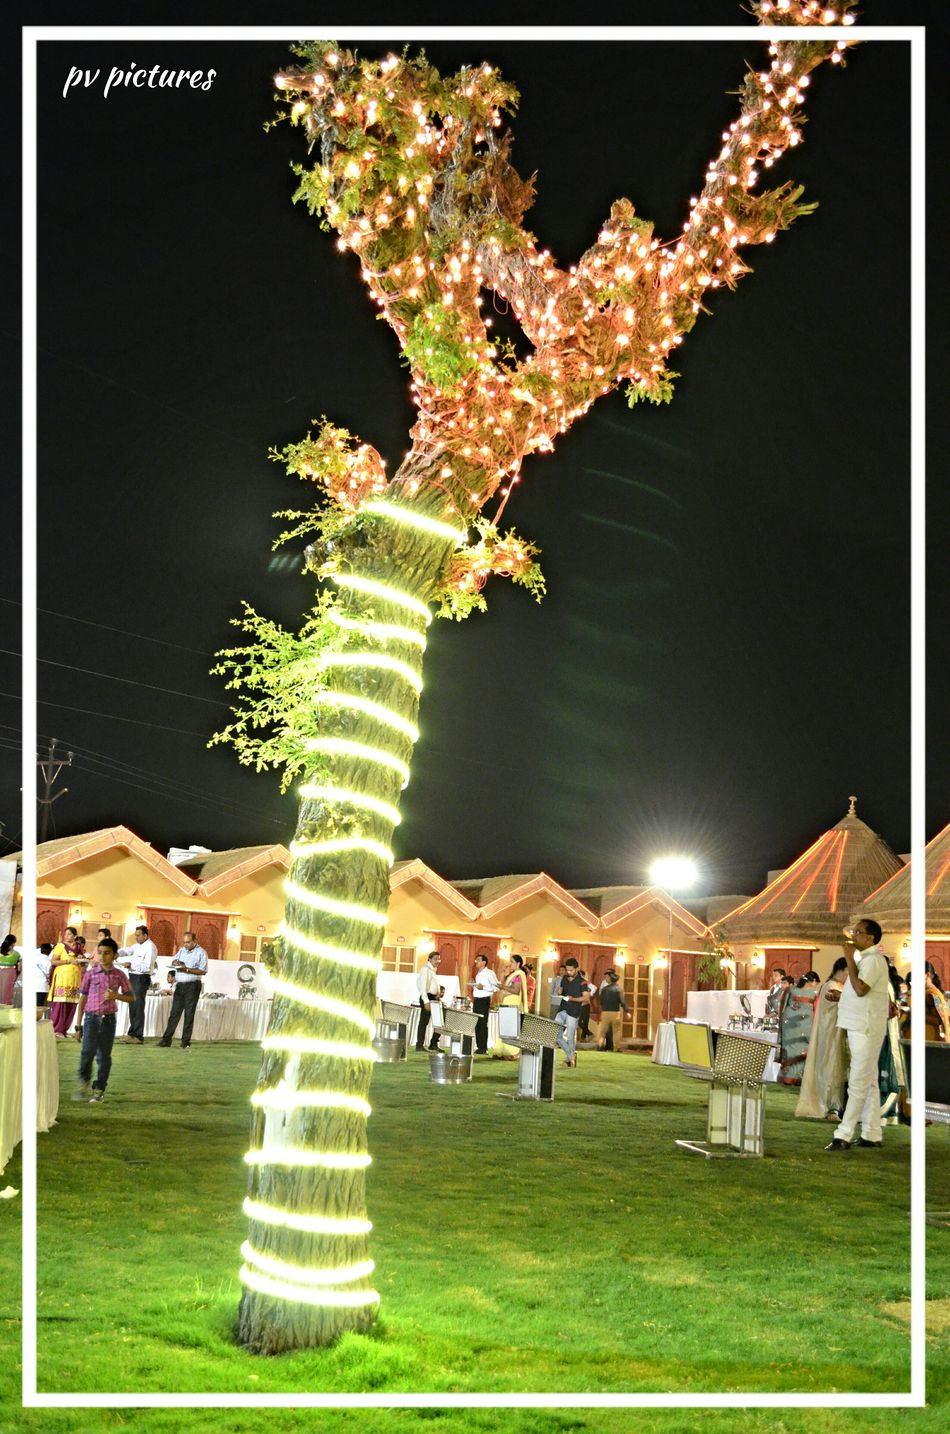 Picspv Rajasthan Tree Bikaner Night Lights Treelight